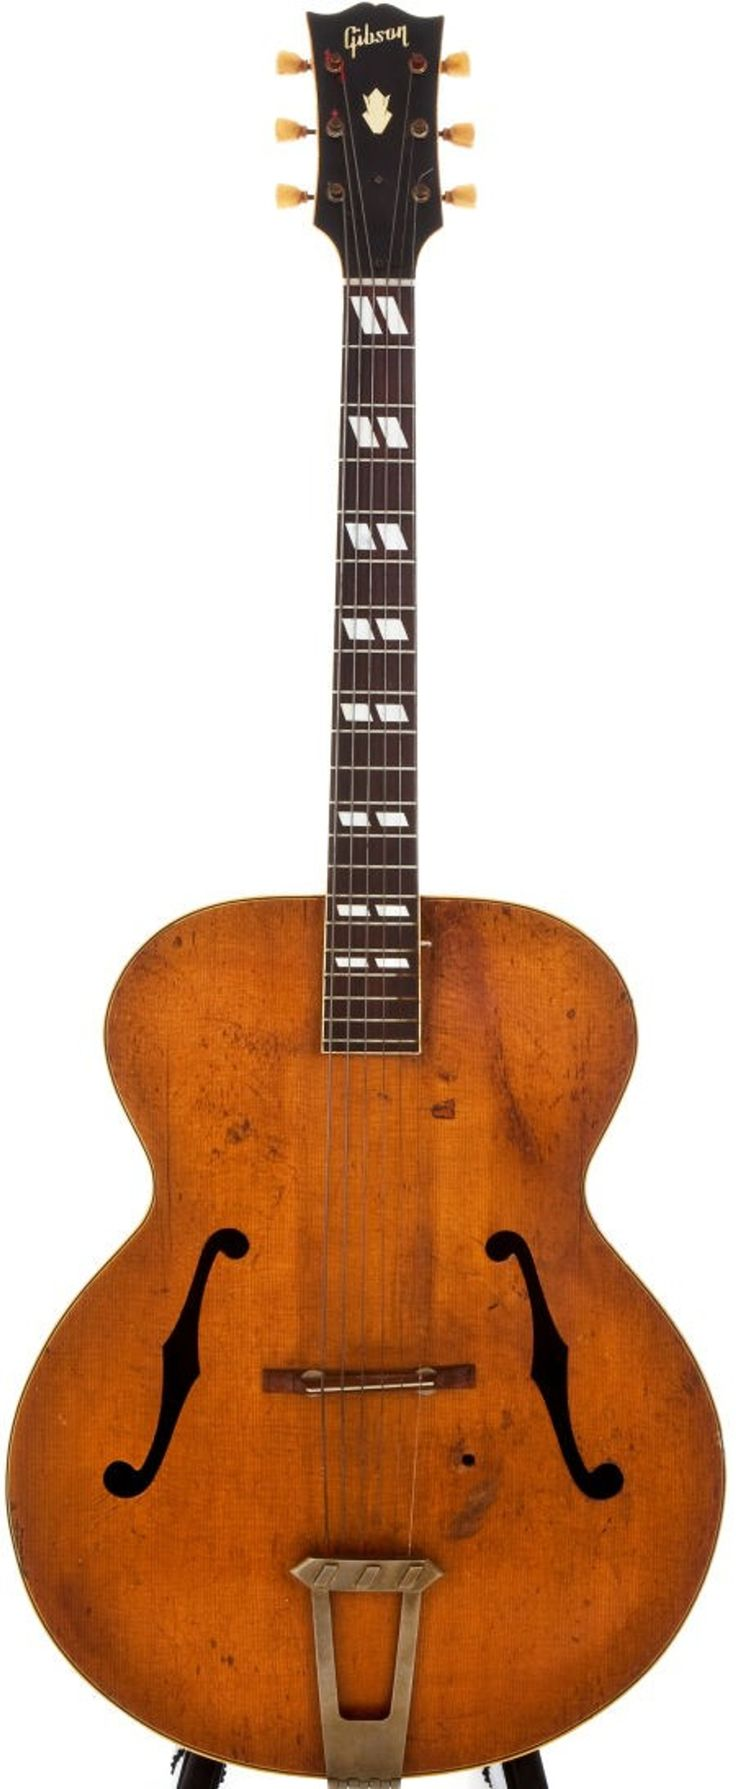 Lot: 54031: 1947 Gibson L-7 Natural Archtop Acoustic Guitar,, Lot Number: 54031, Starting Bid: $280, Auctioneer: Heritage Auctions, Auction: 2011 Guitar & Musical Instruments #7050, Date: October 22nd, 2011 PDT